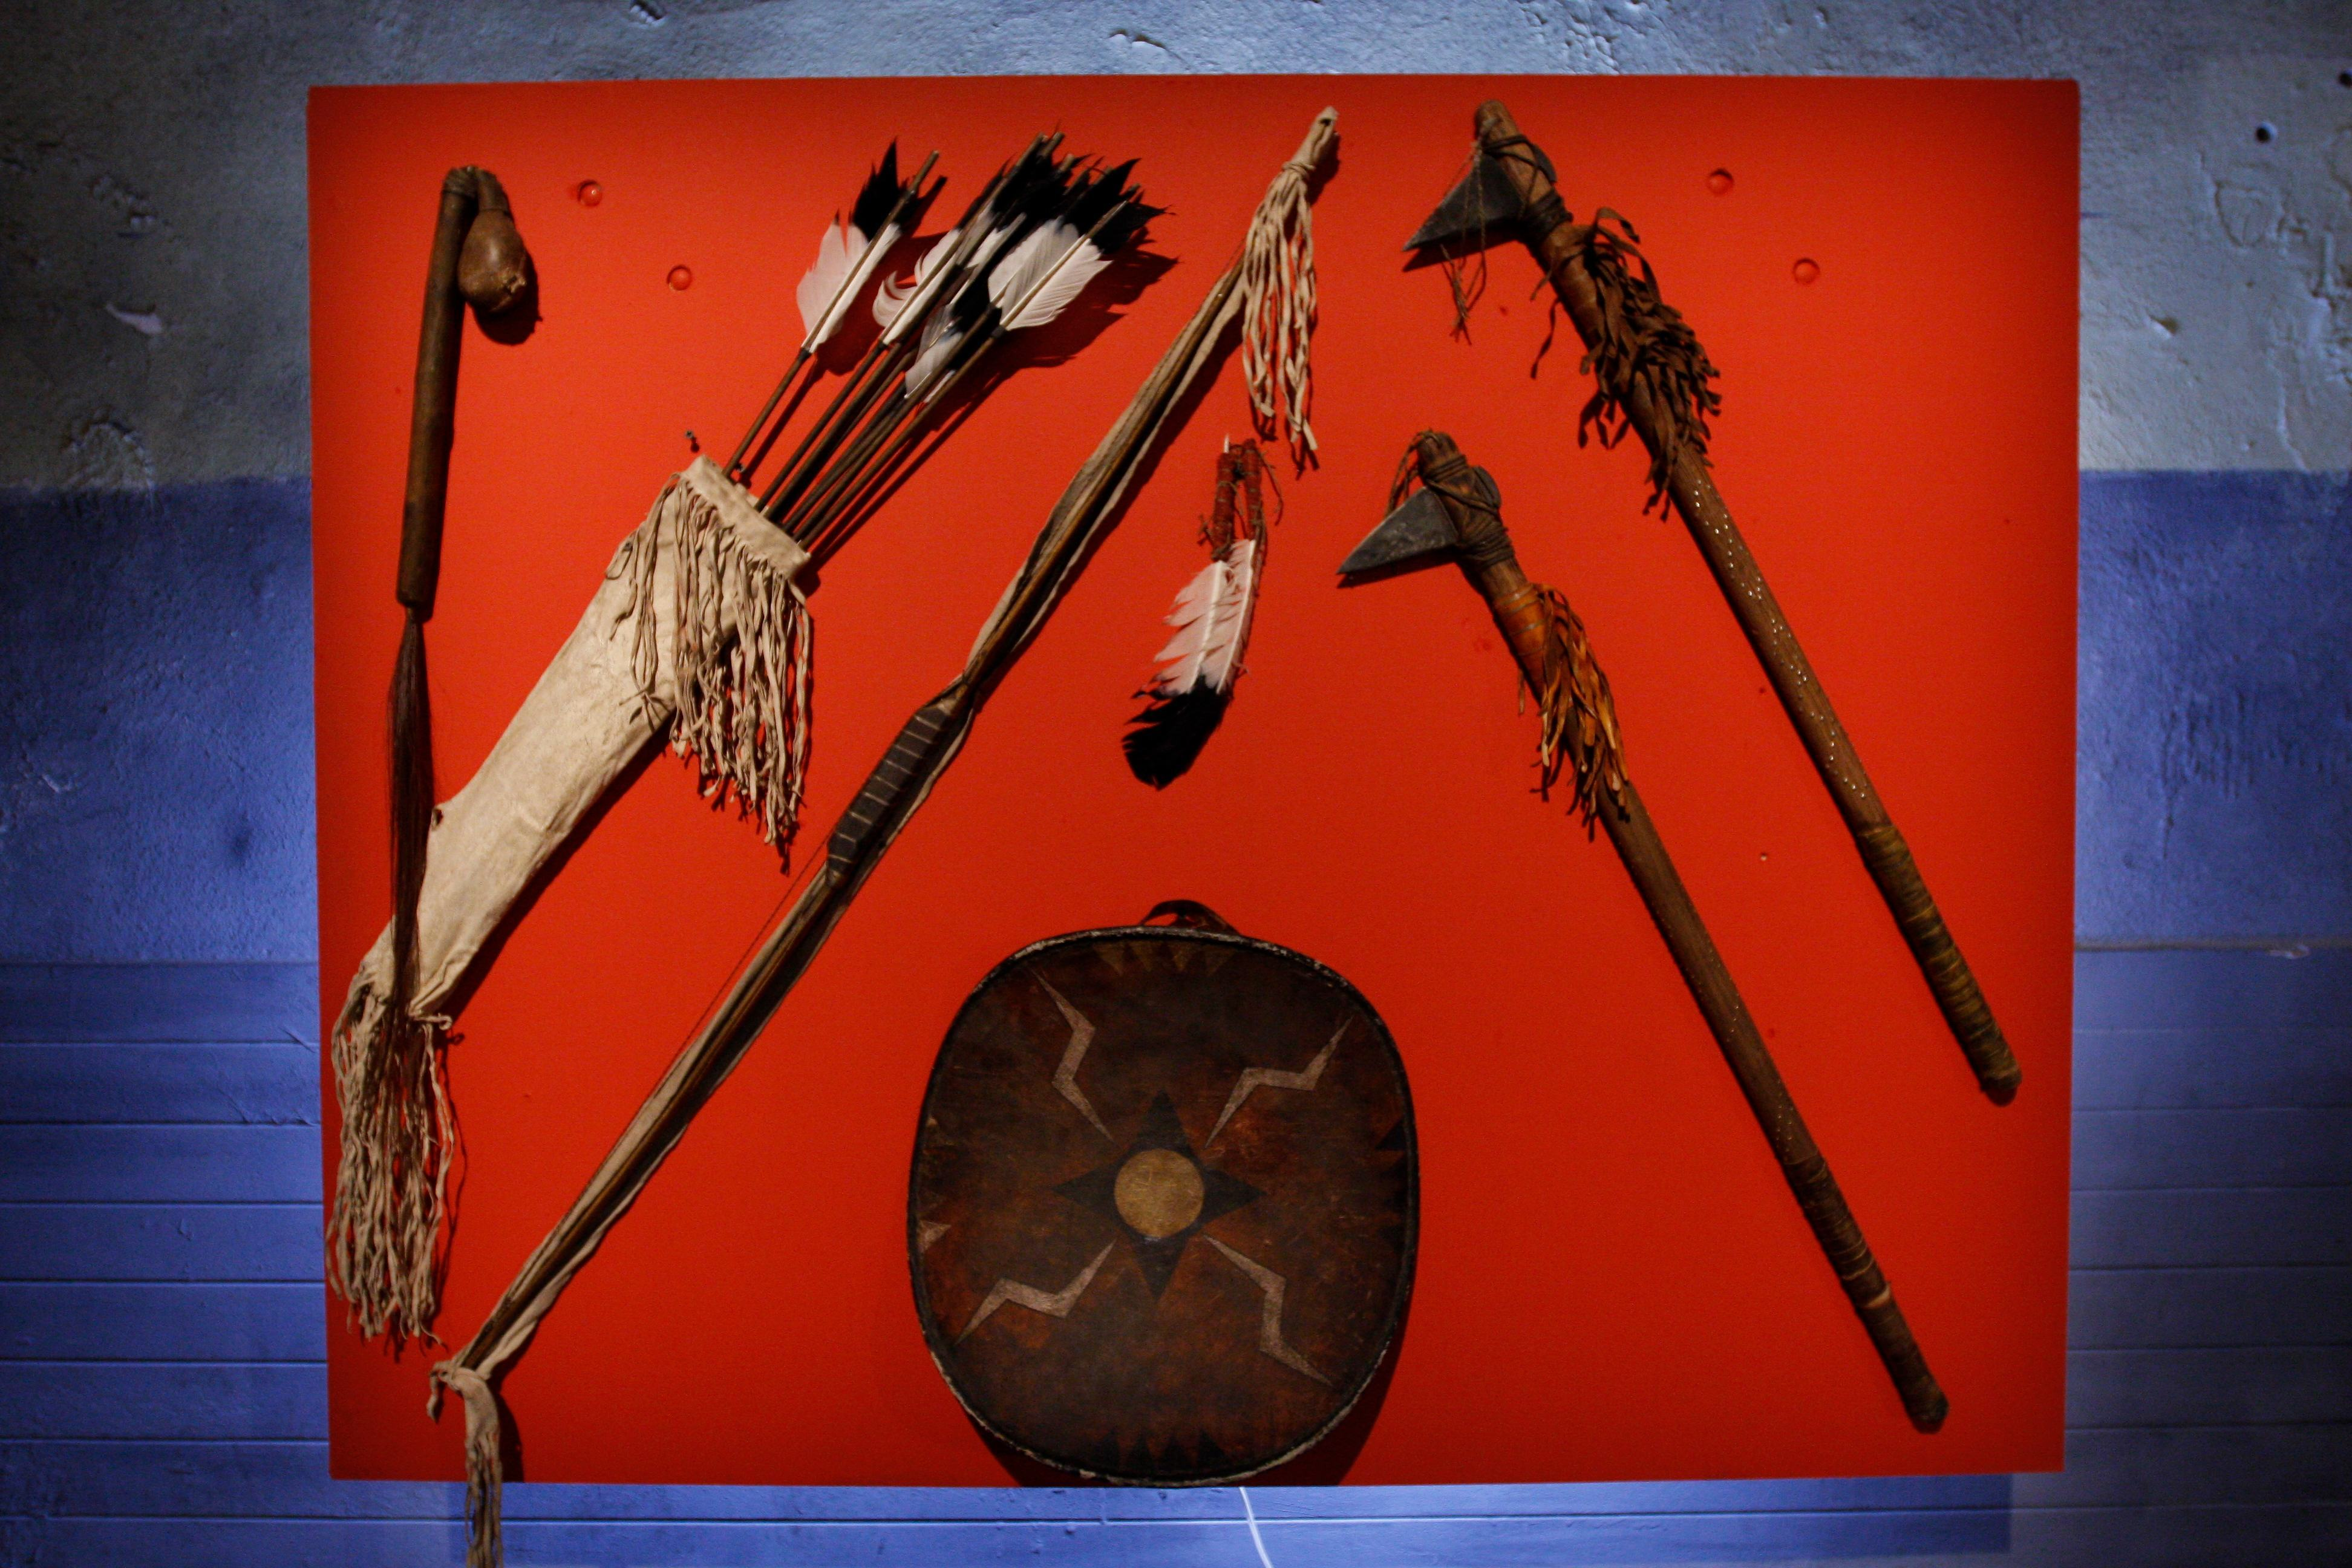 Comanche weapons collection